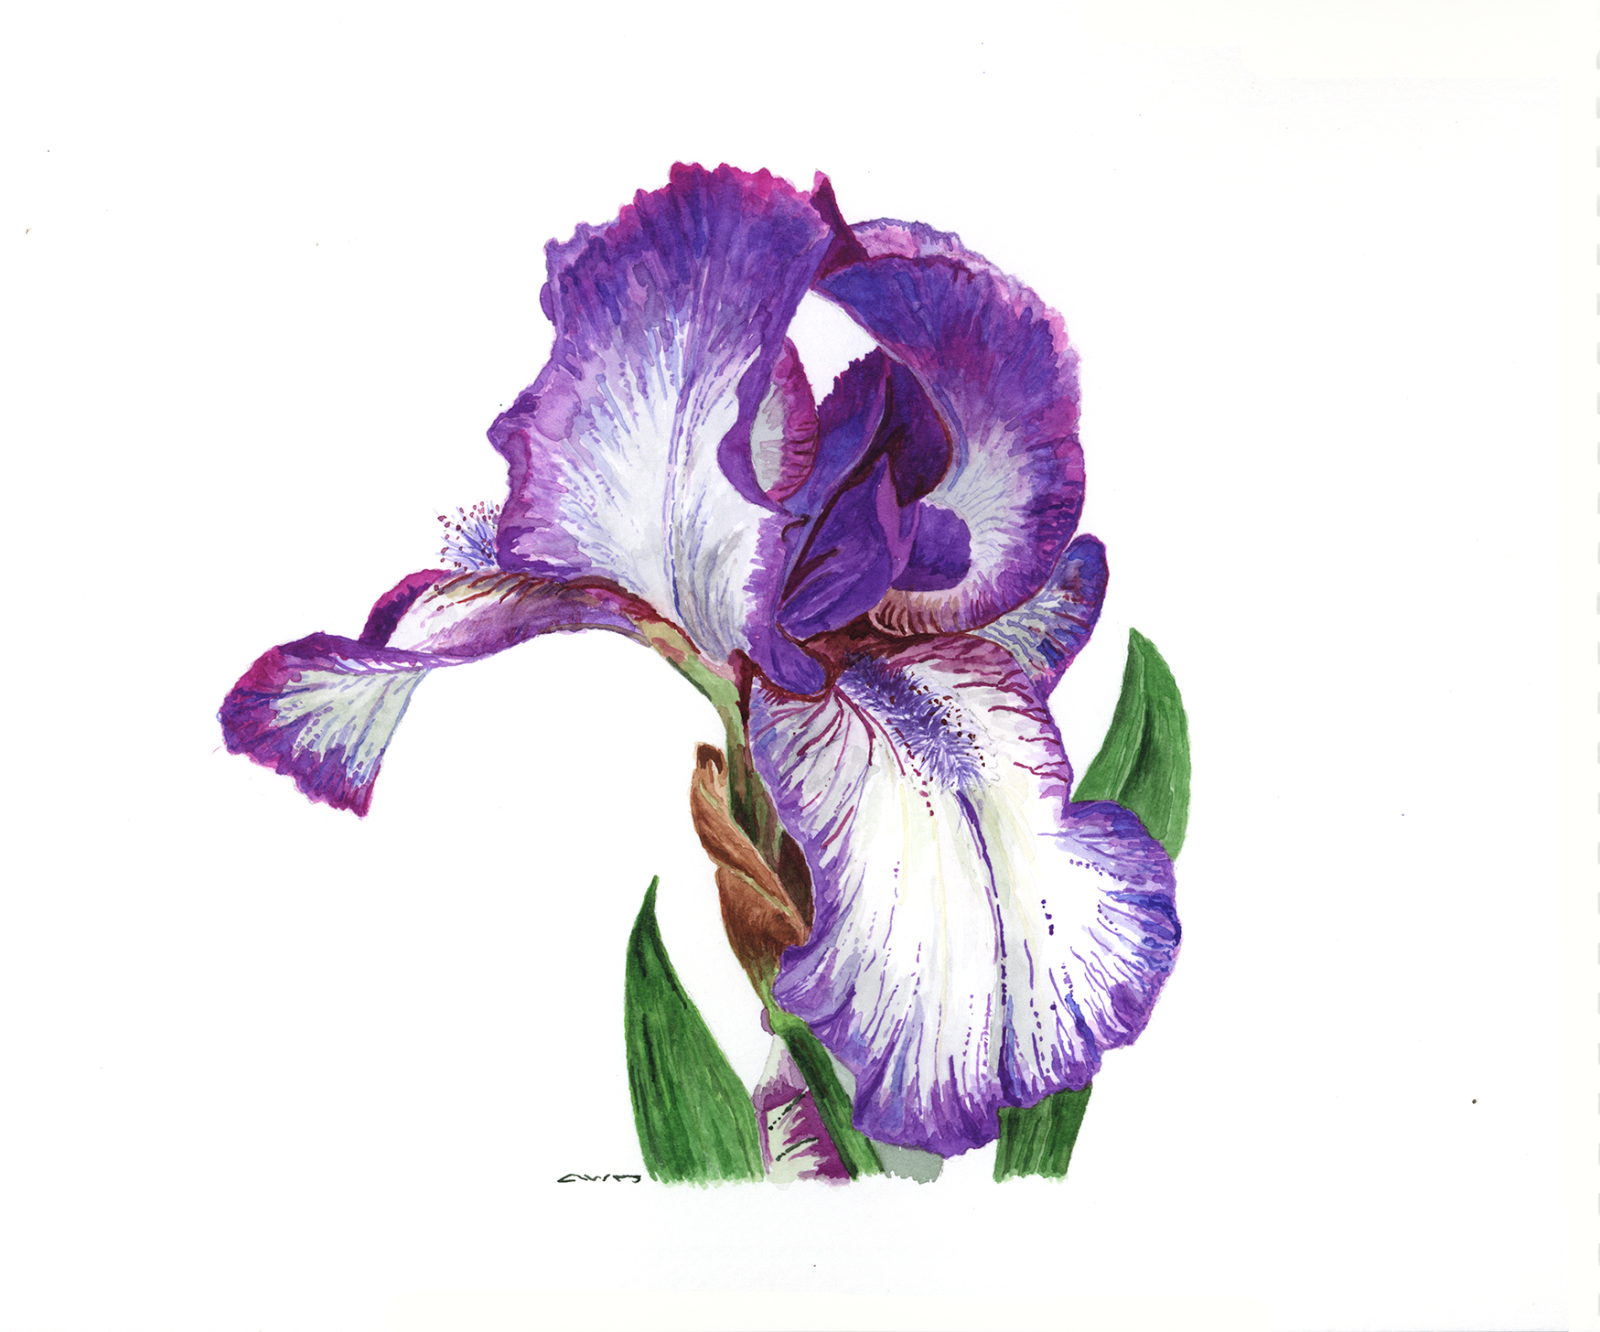 How to draw an iris flower step by step images flower wallpaper hd dianne jansing art purple iris i love when an artist shows the steps a painting goes izmirmasajfo